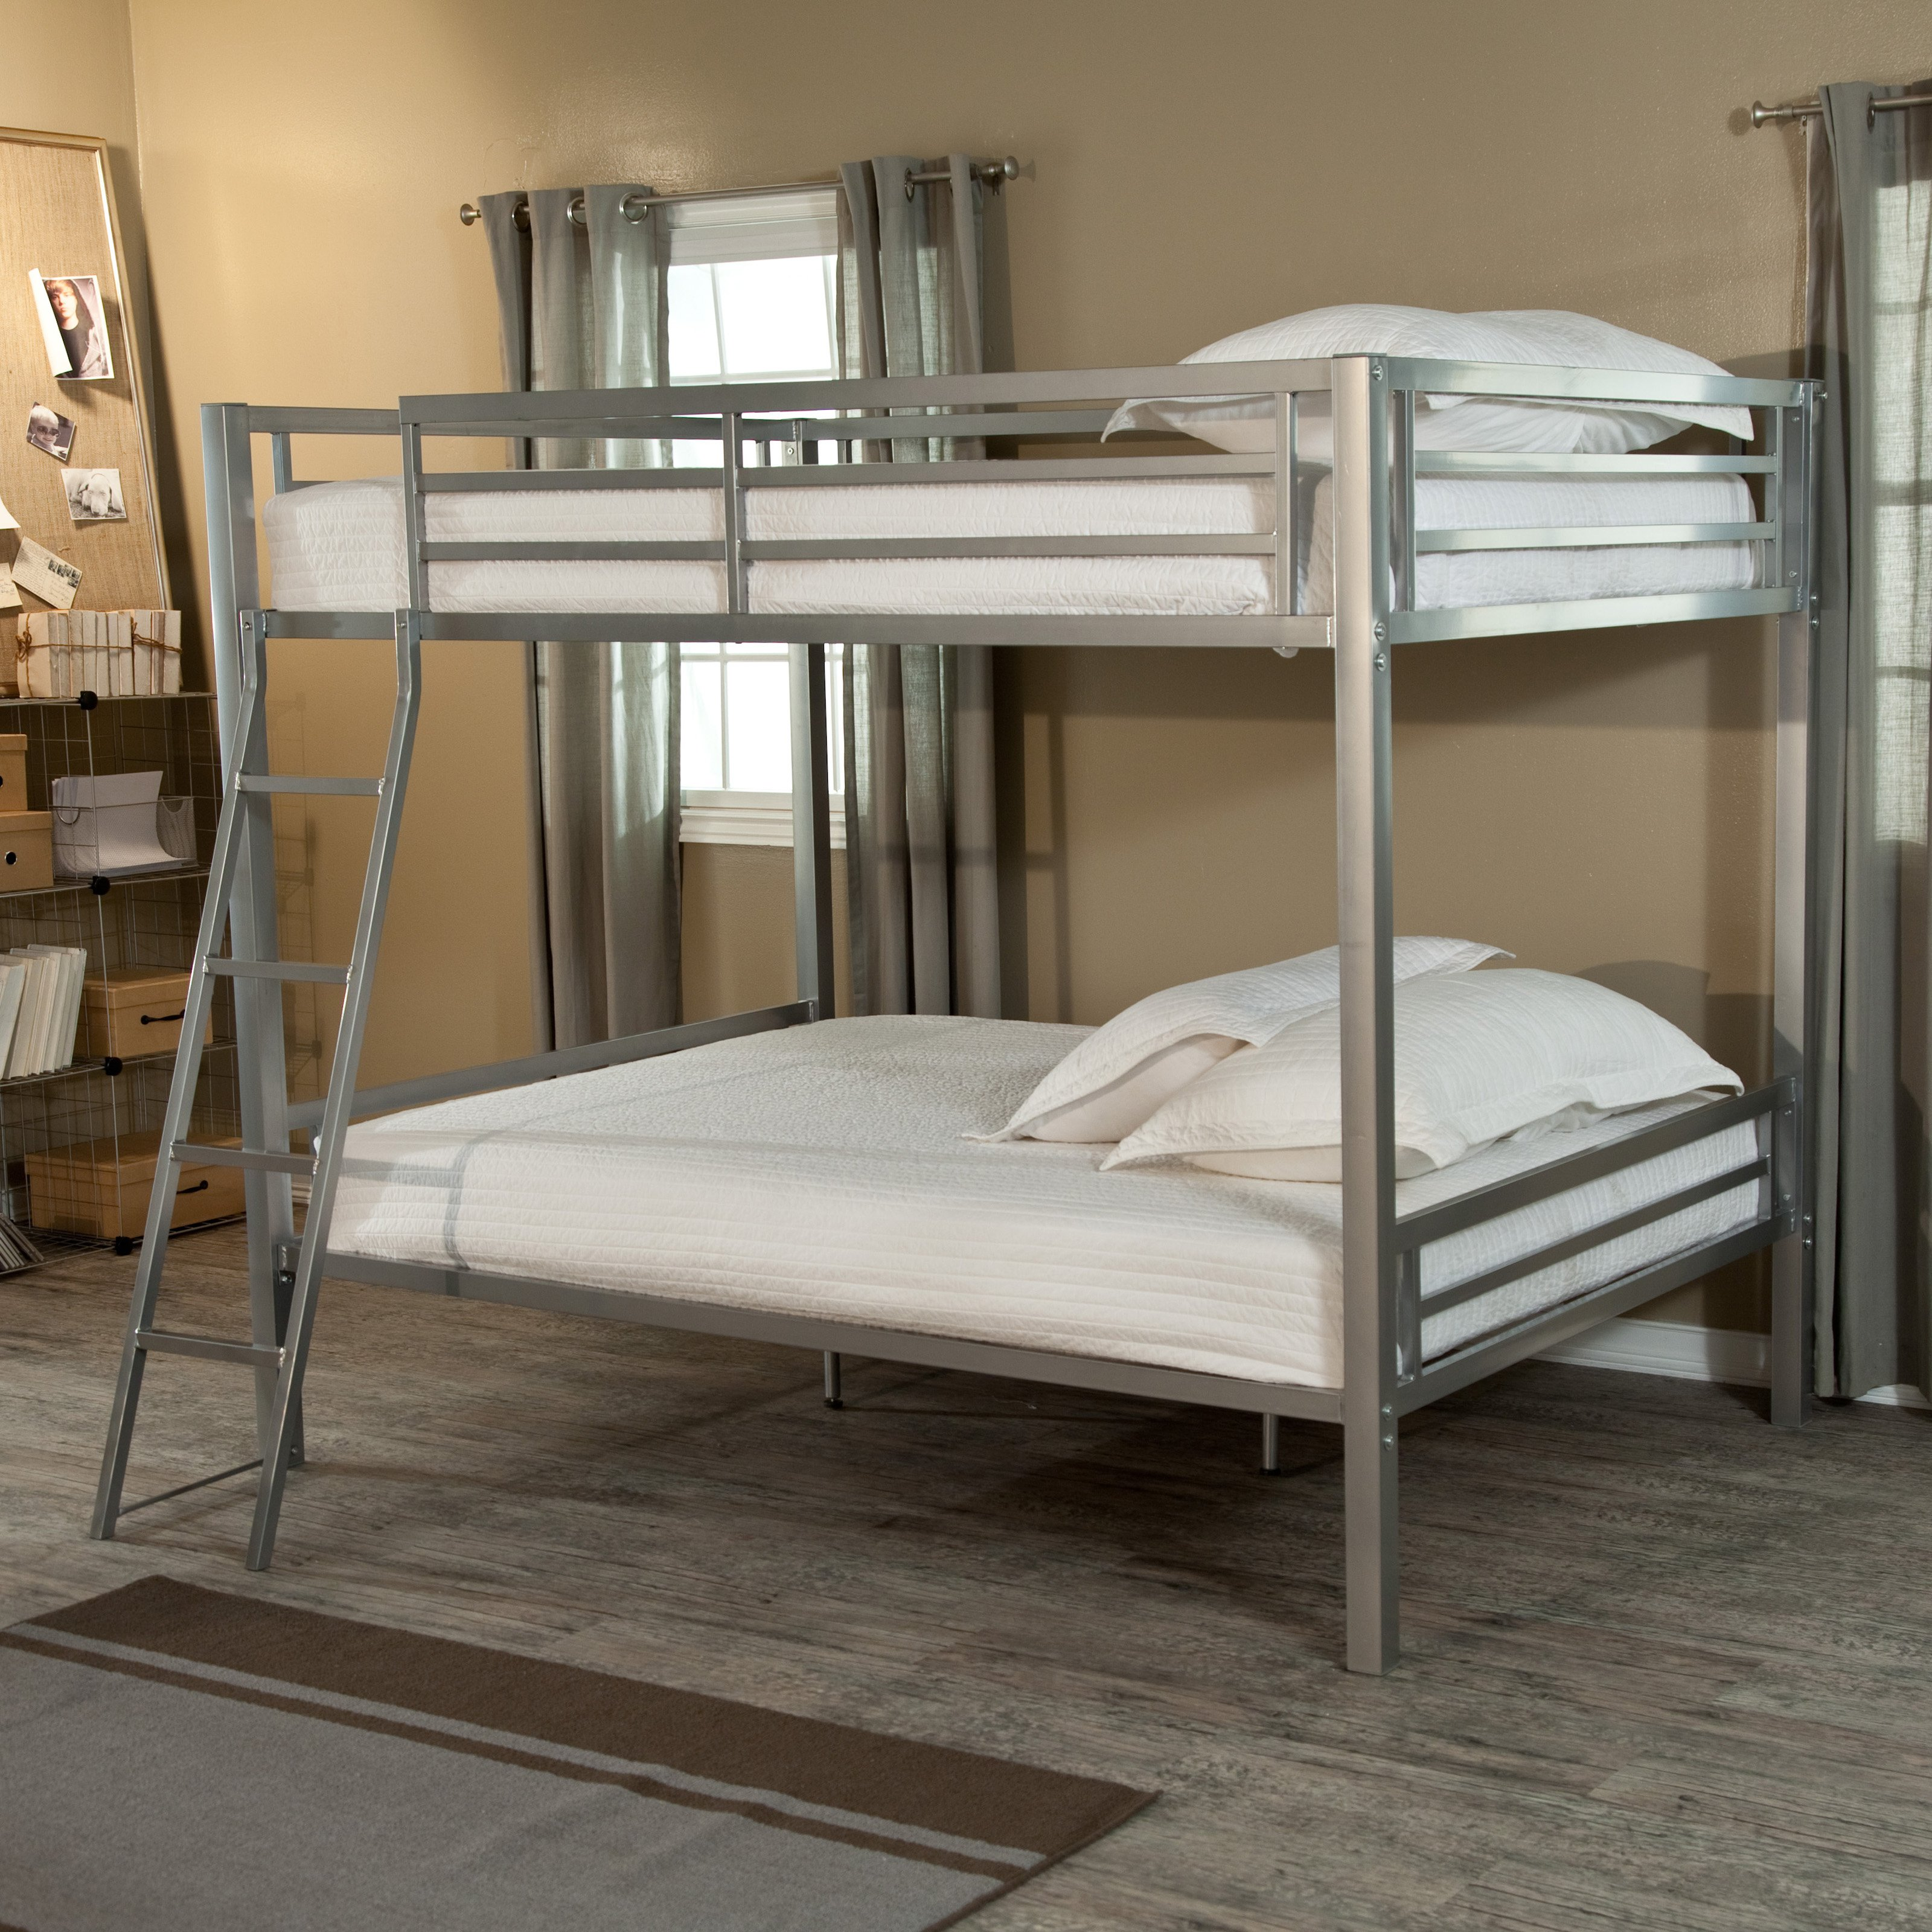 Duro Hanley Full over Full Bunk Bed Silver by